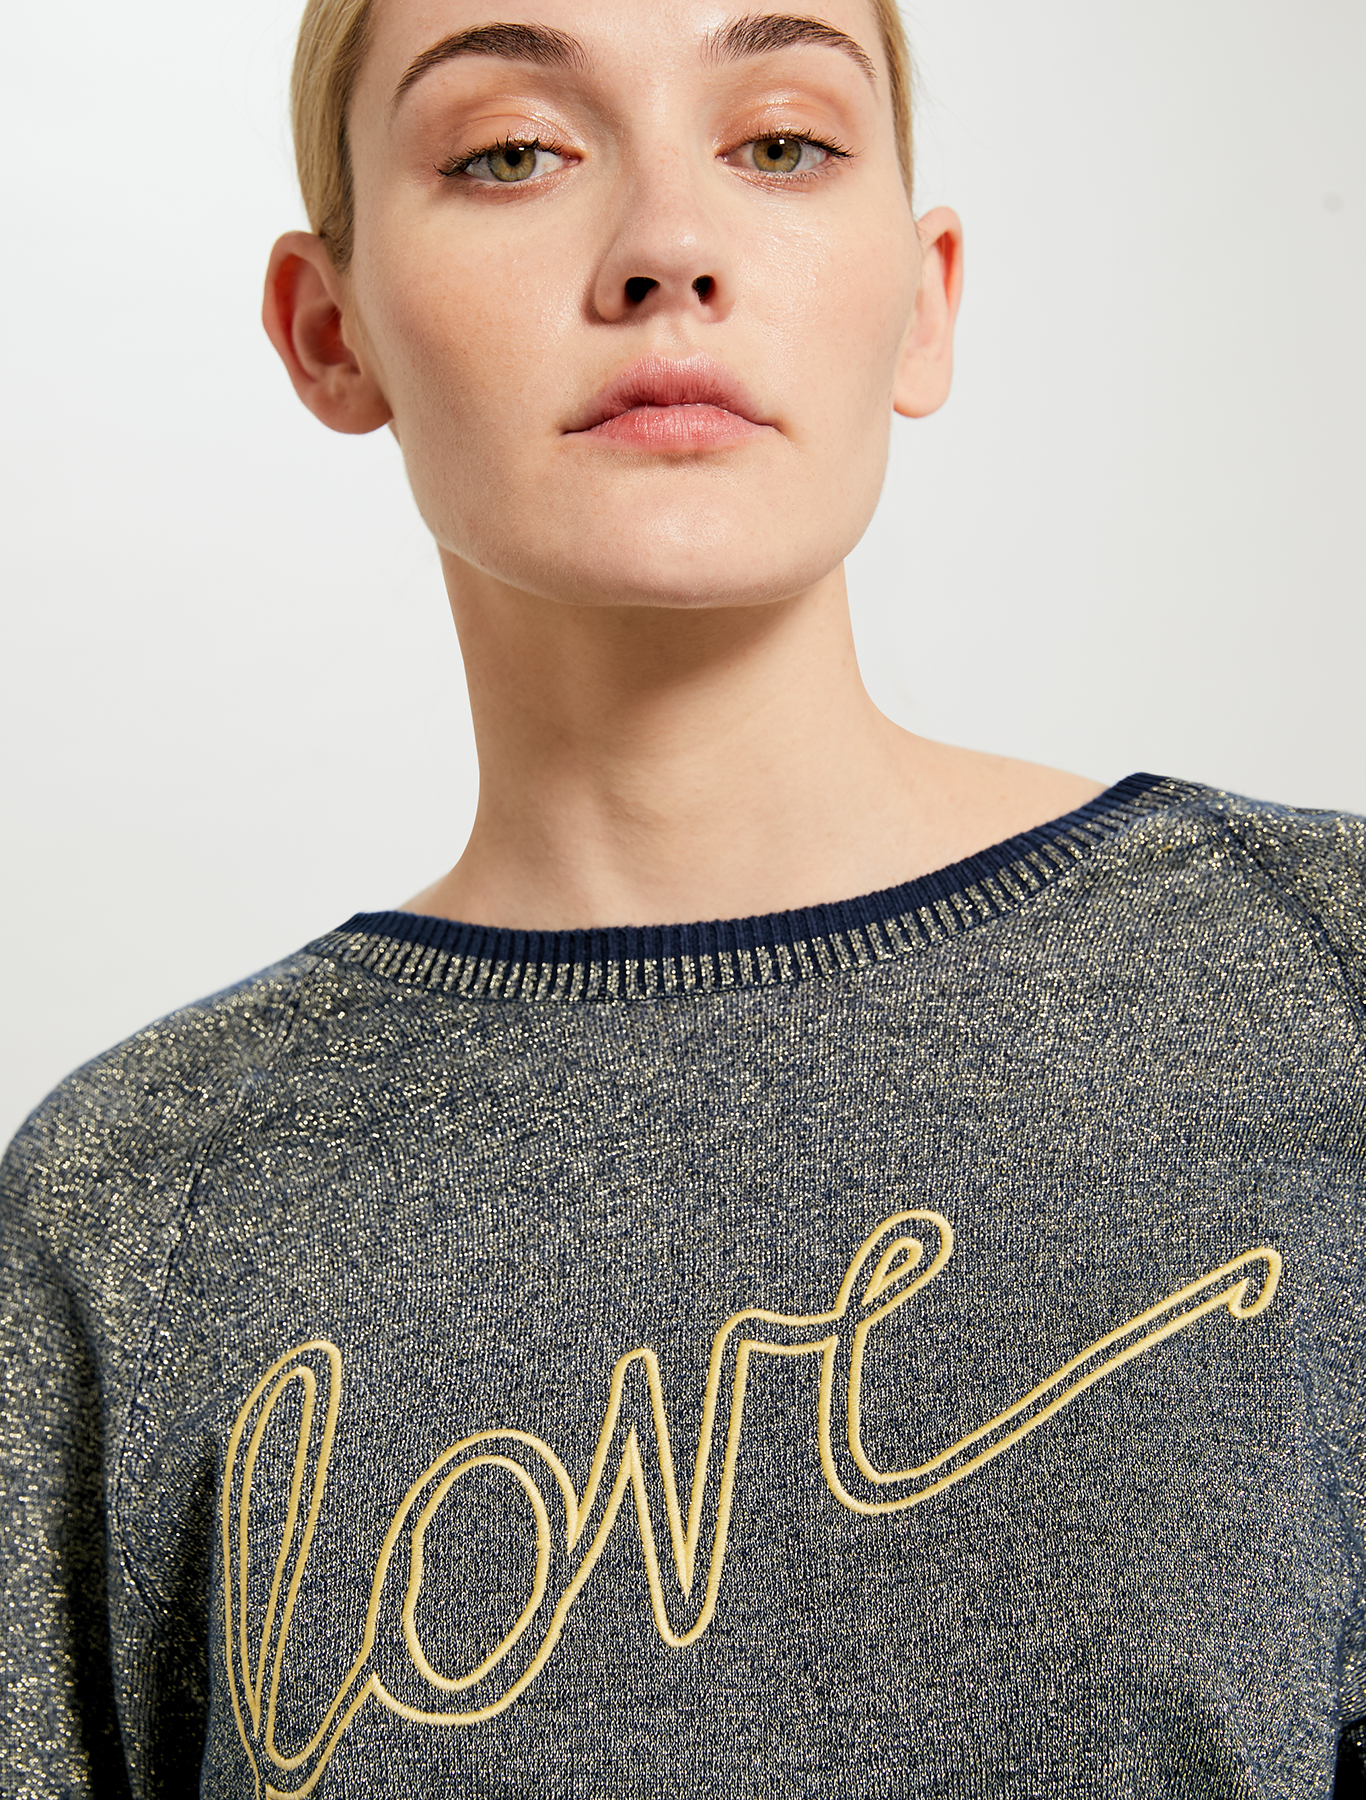 Lamé jumper with 'love' embroidery - navy blue - pennyblack